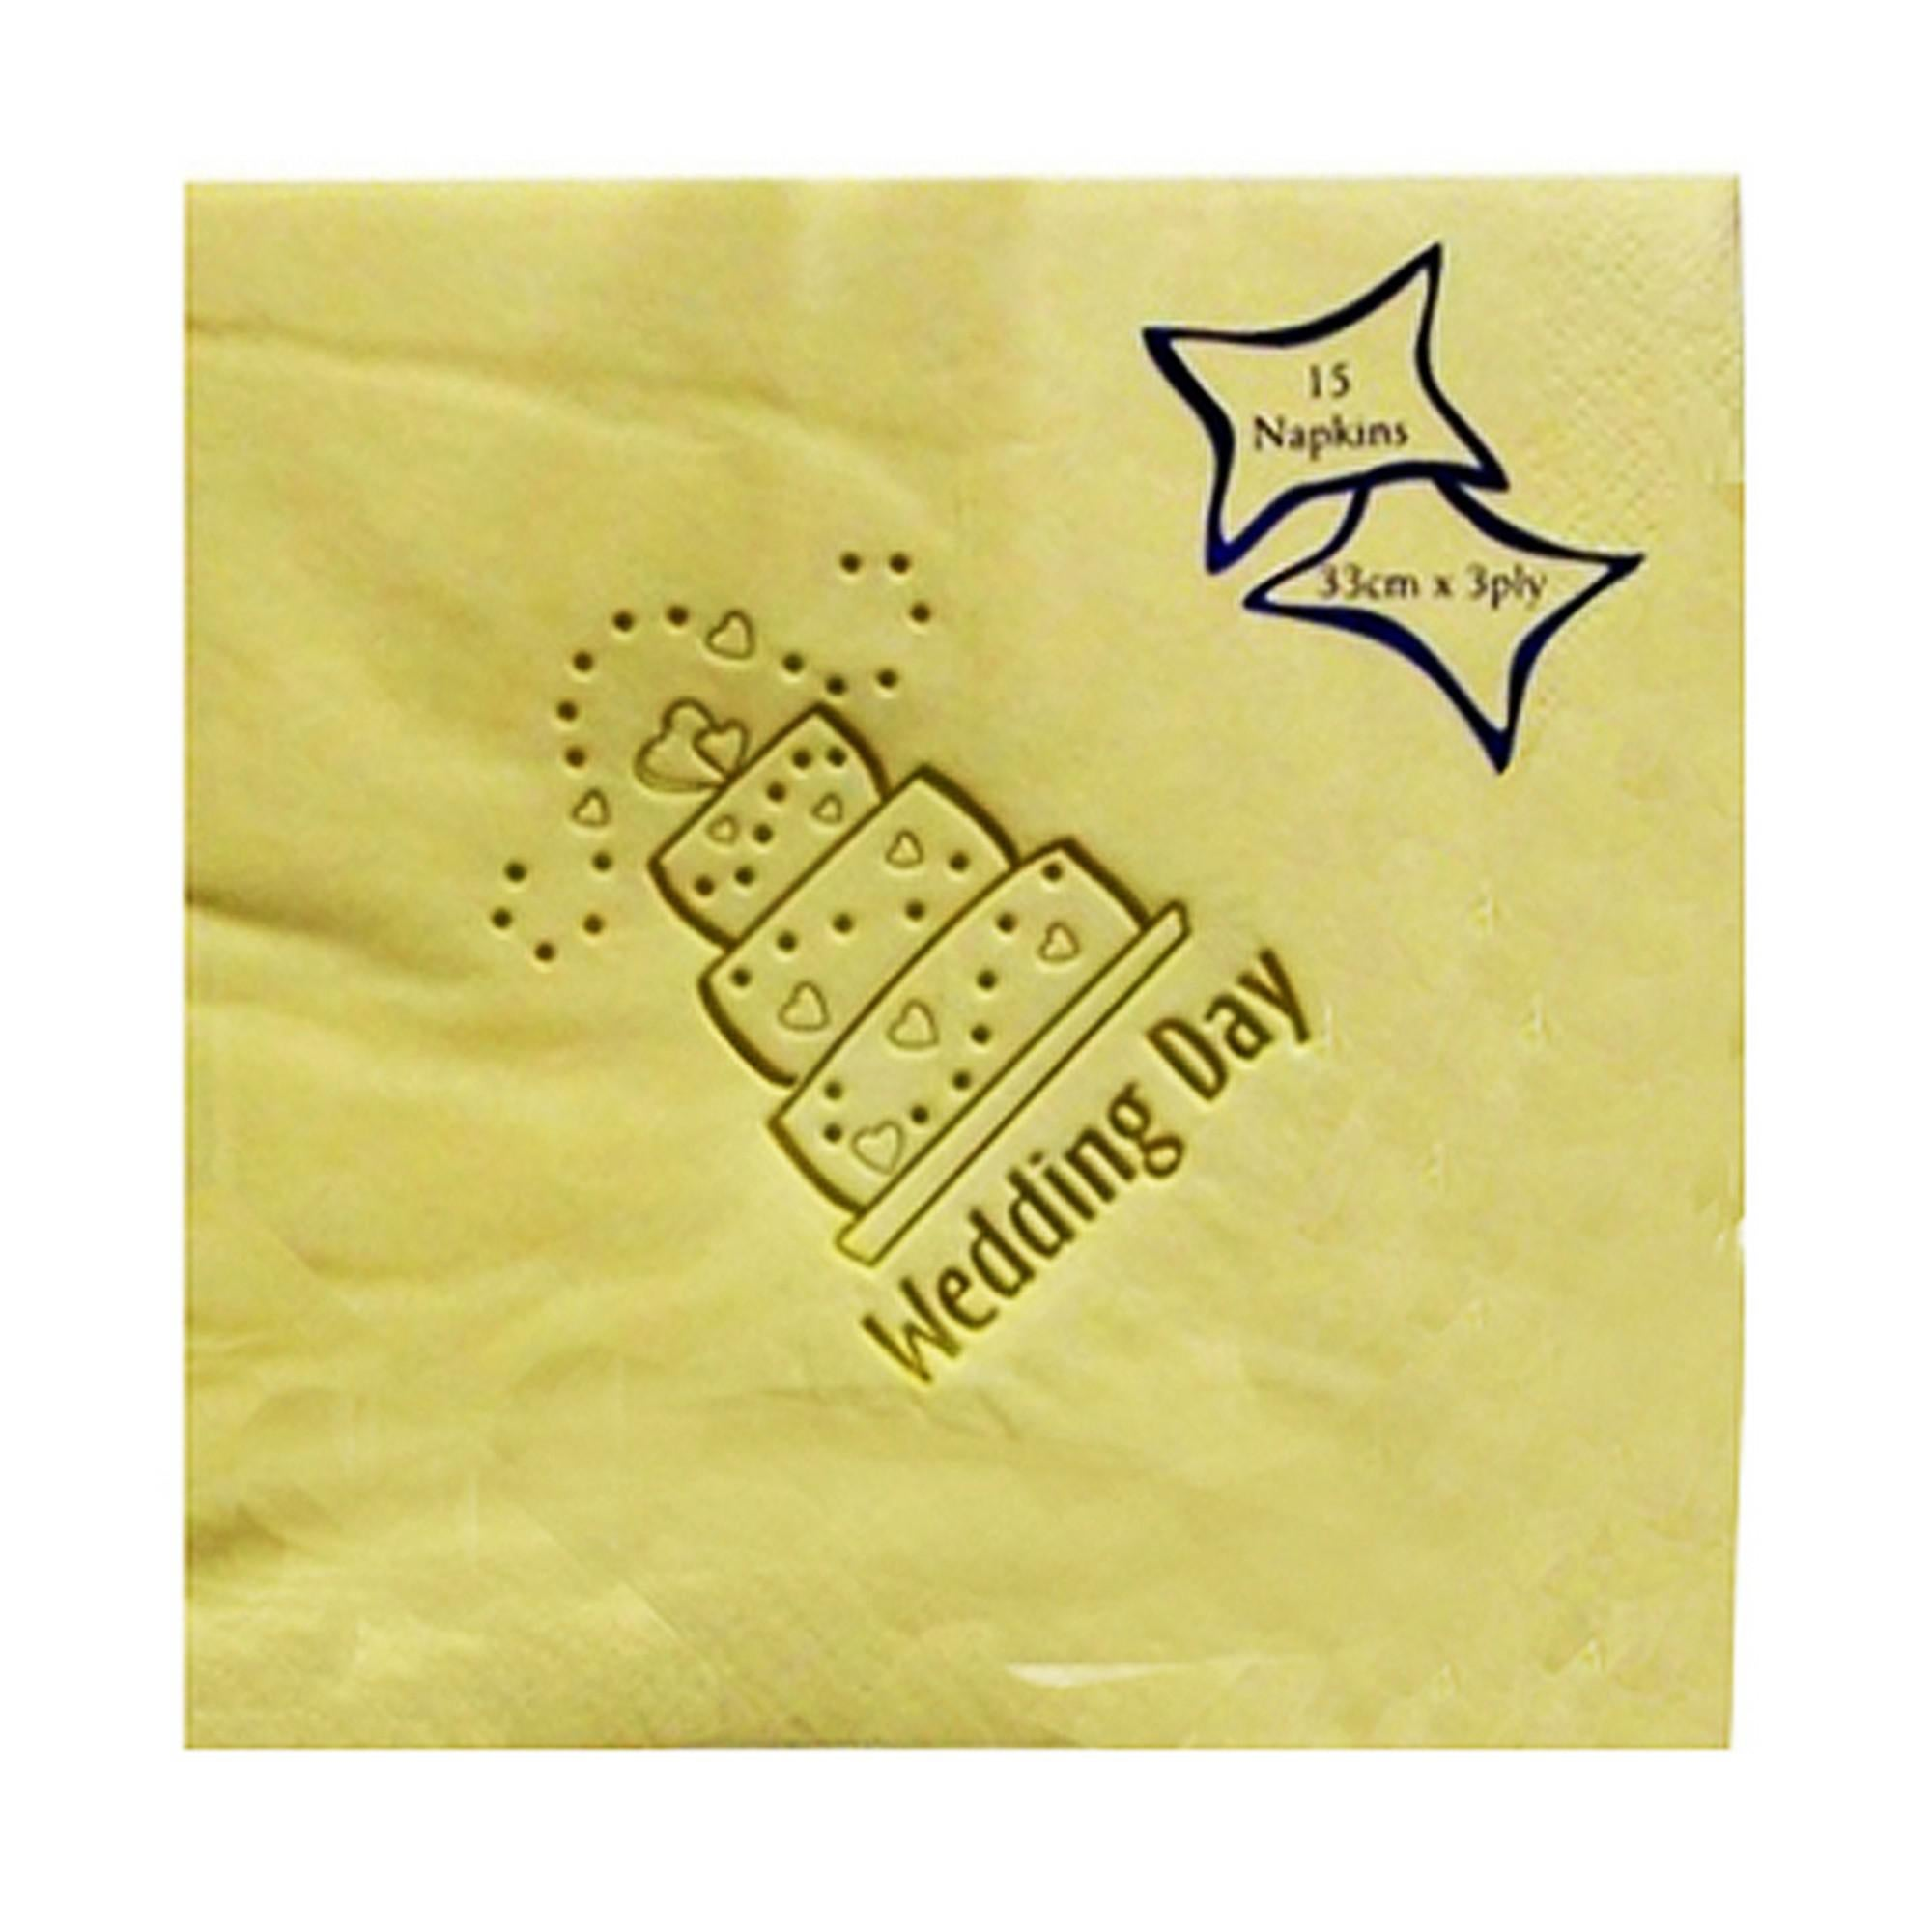 NPK 60th Birthday Foil Printed Napkins Pack Of 15